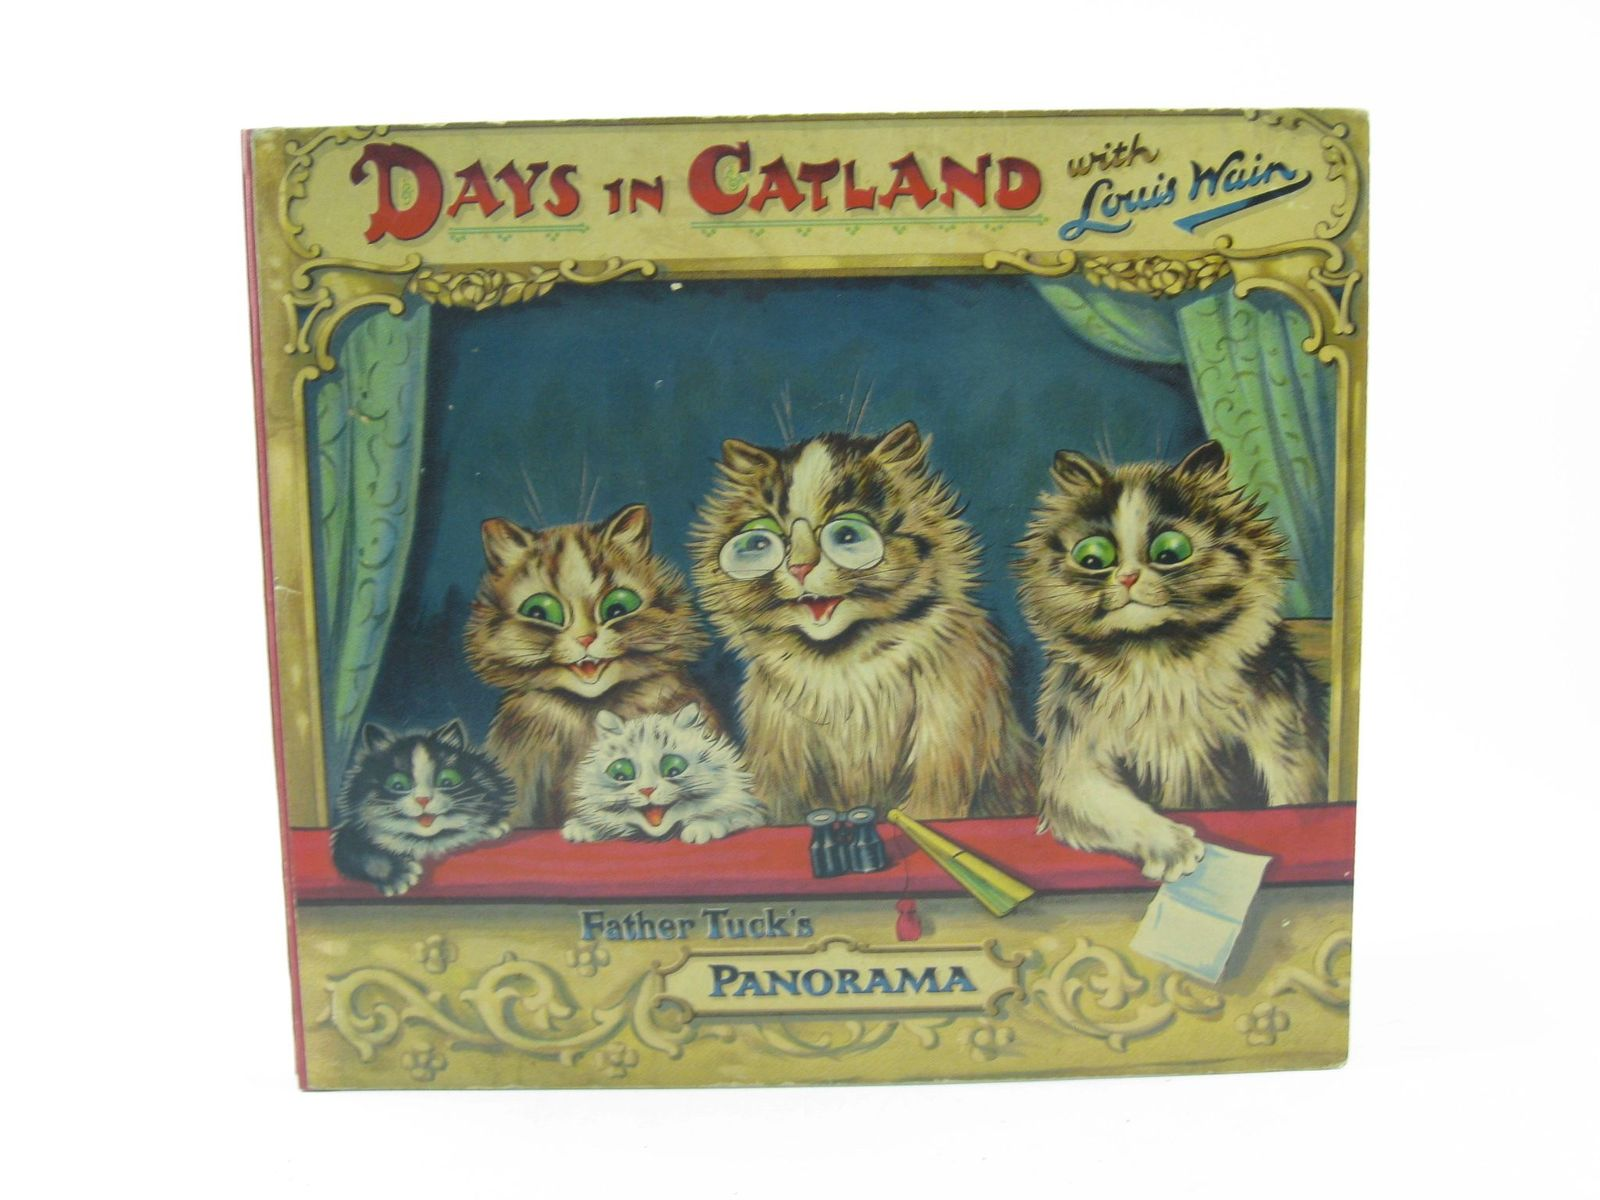 Photo of DAYS IN CATLAND written by Burnaby, Arthur illustrated by Wain, Louis published by Raphael Tuck & Sons Ltd. (STOCK CODE: 1311382)  for sale by Stella & Rose's Books